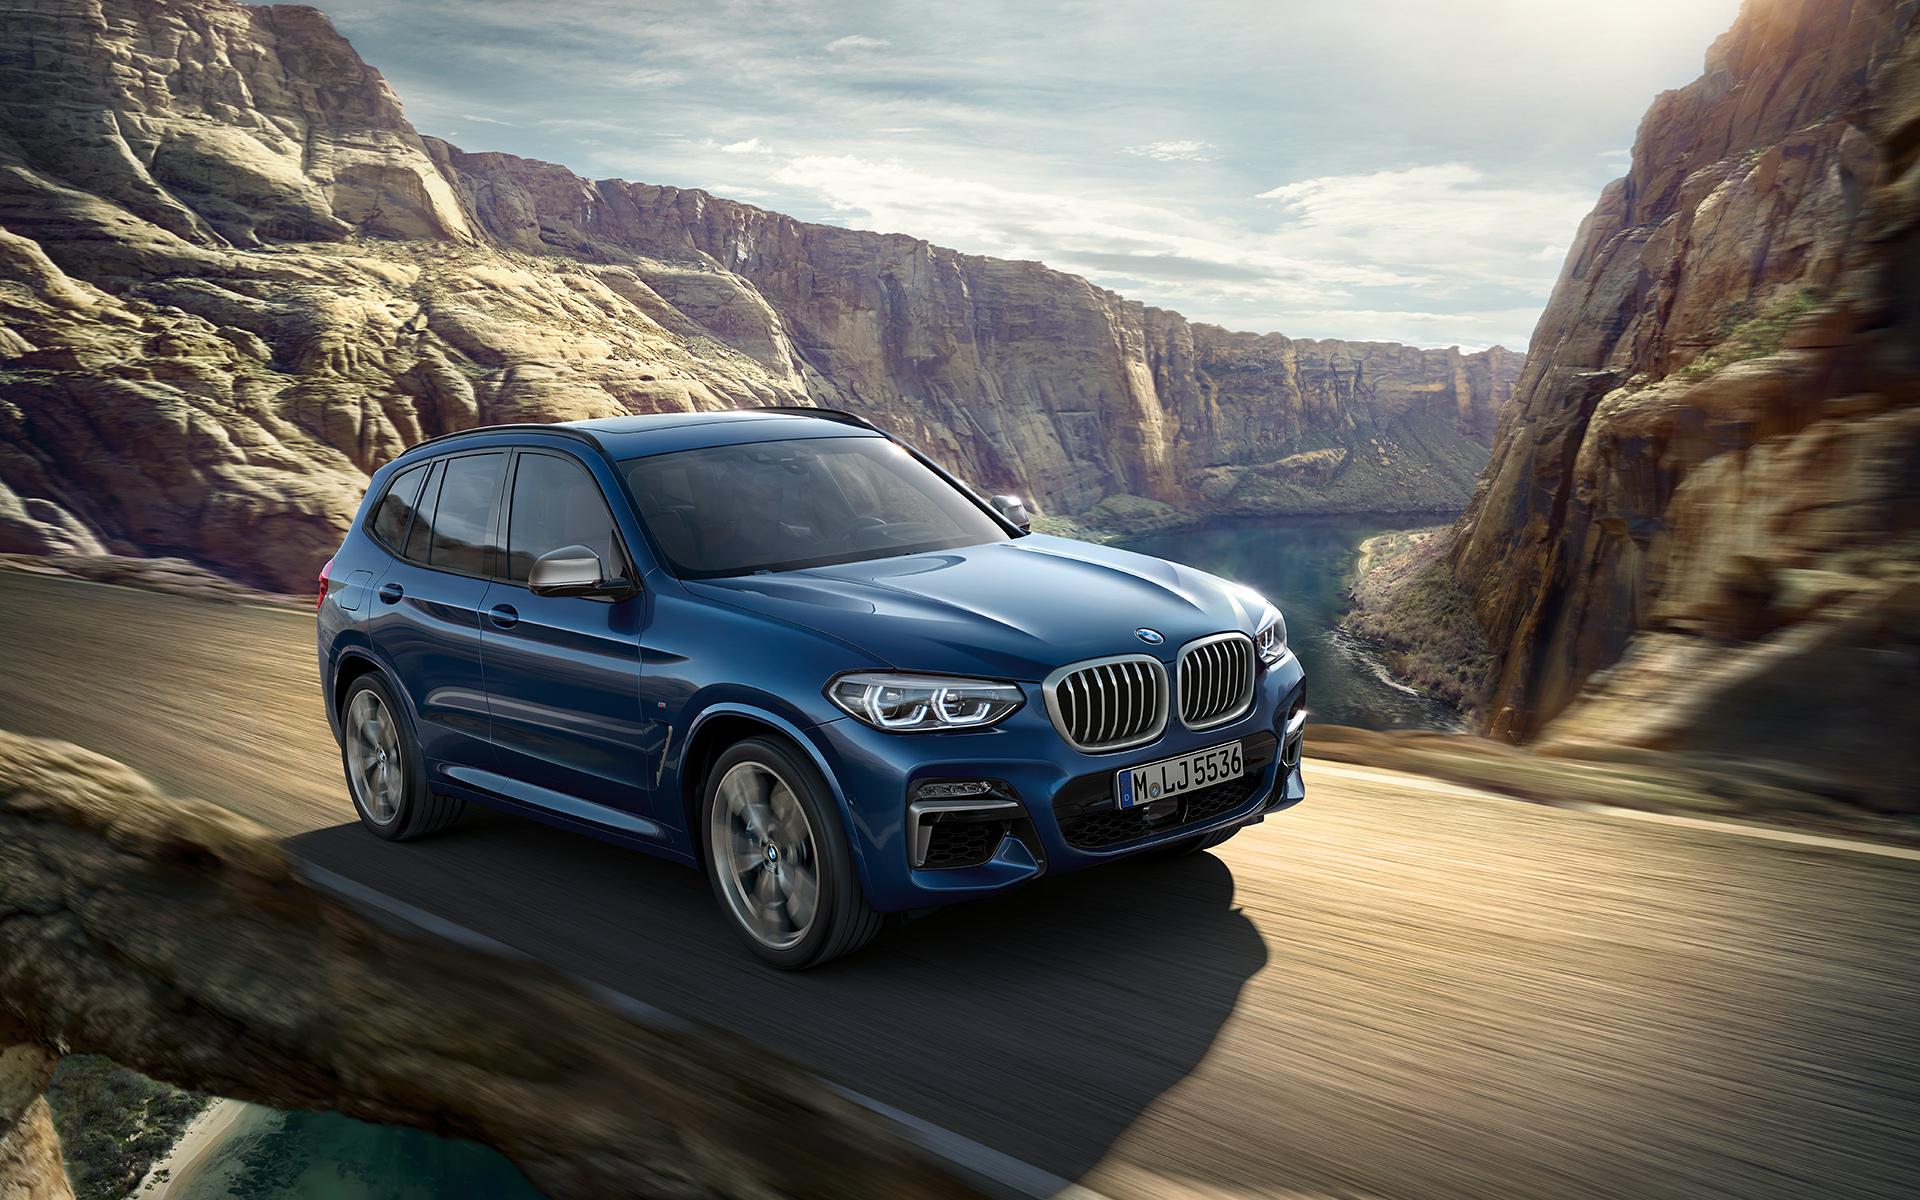 BMW X Series X3: frontside view crossing the canyon.